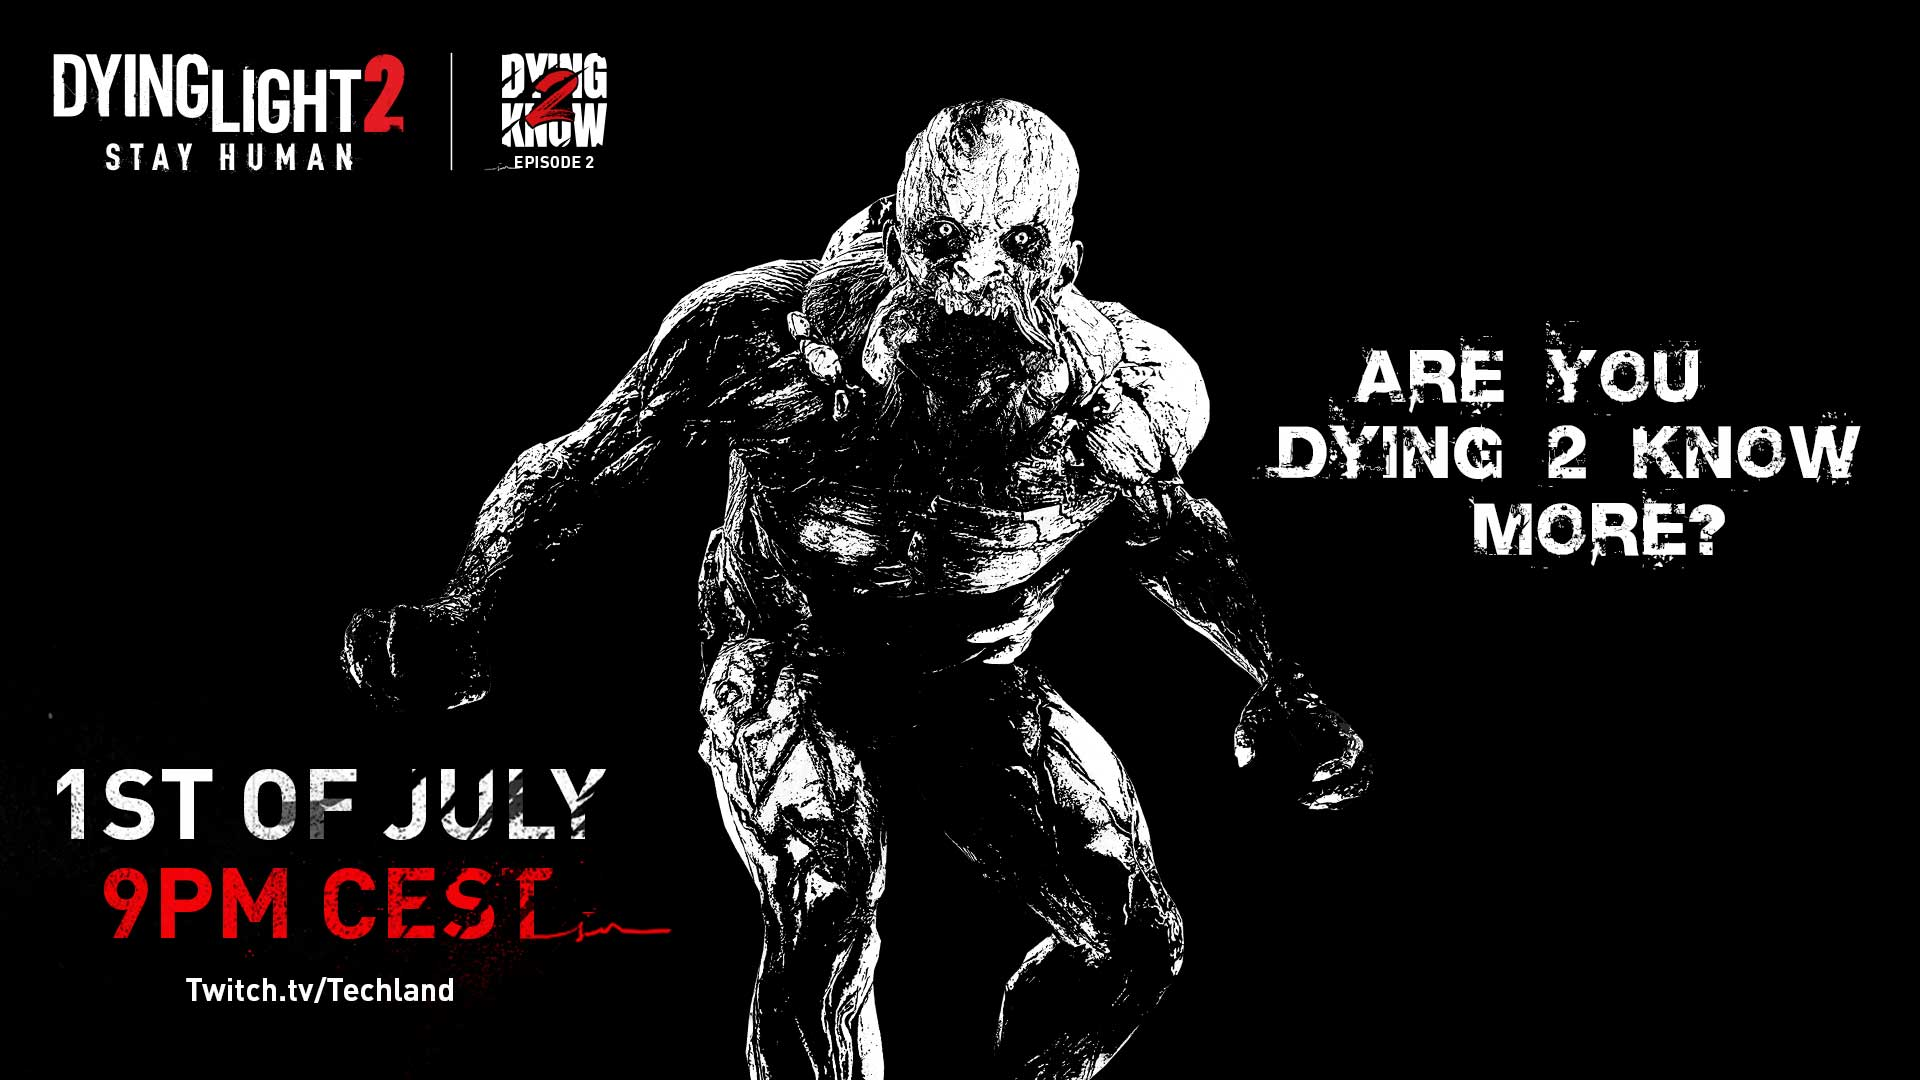 dying light 2 stay human dying 2 know episode 2